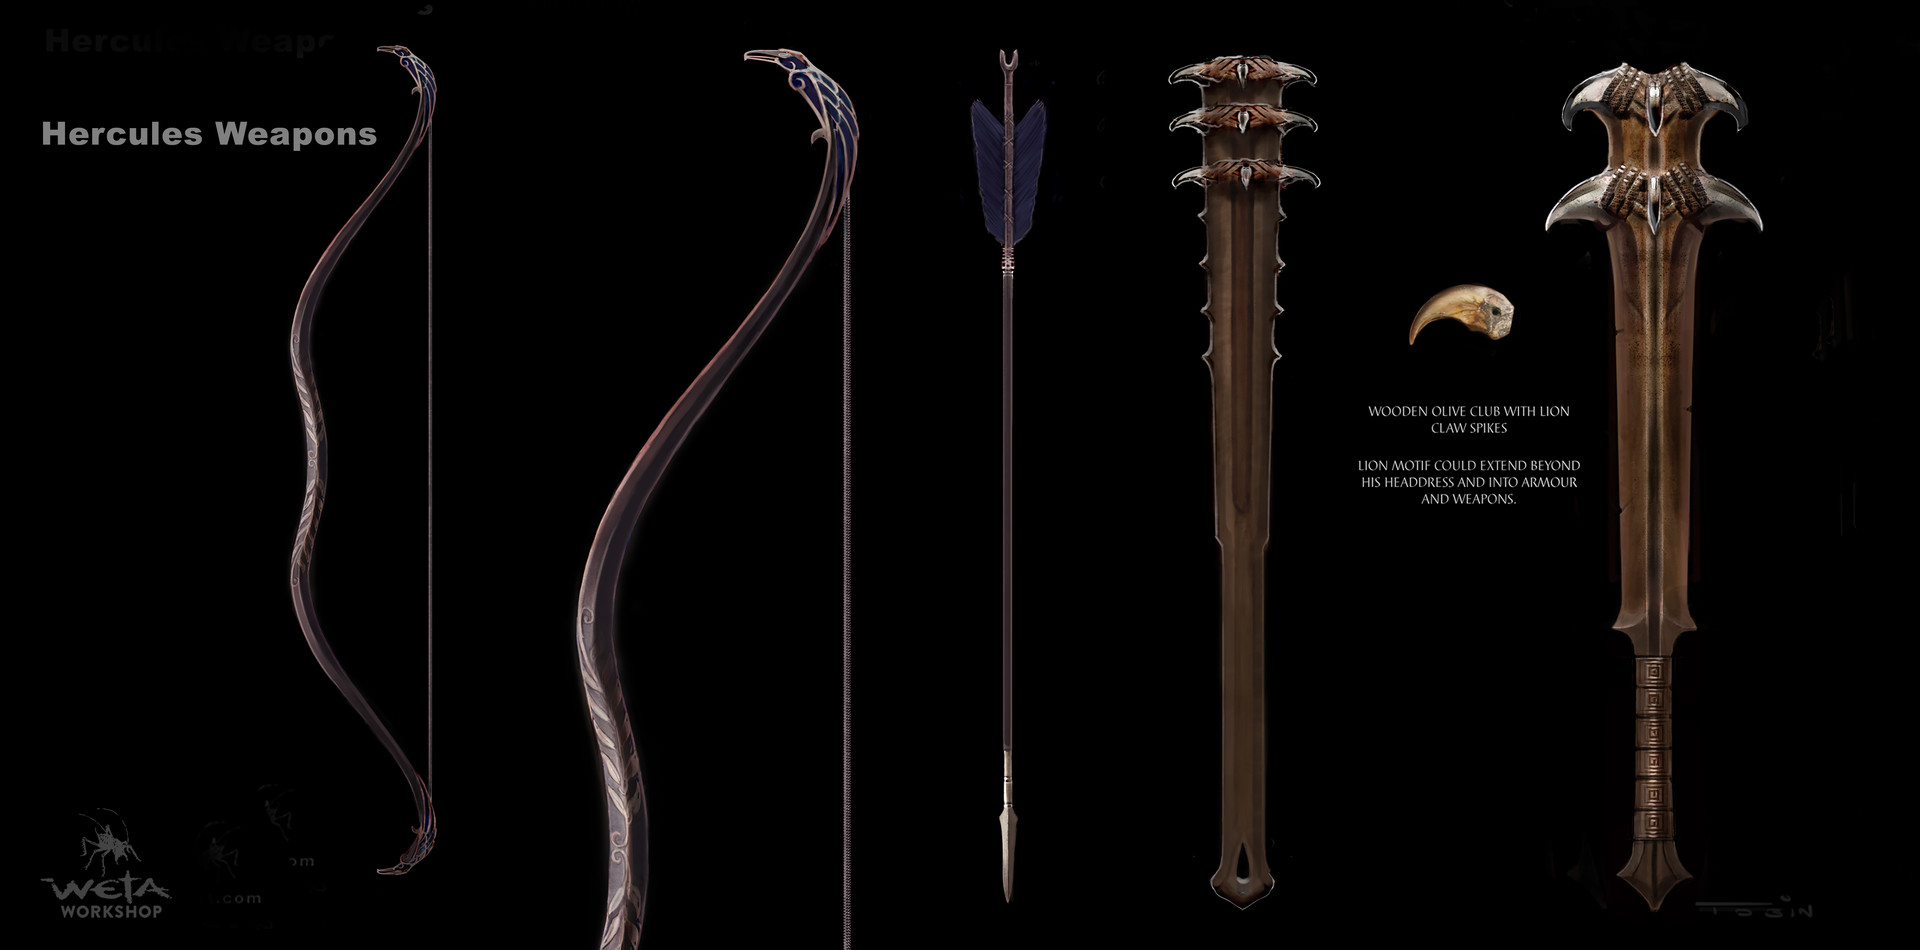 Weta workshop design studio weta workshop design studio hercules weapons